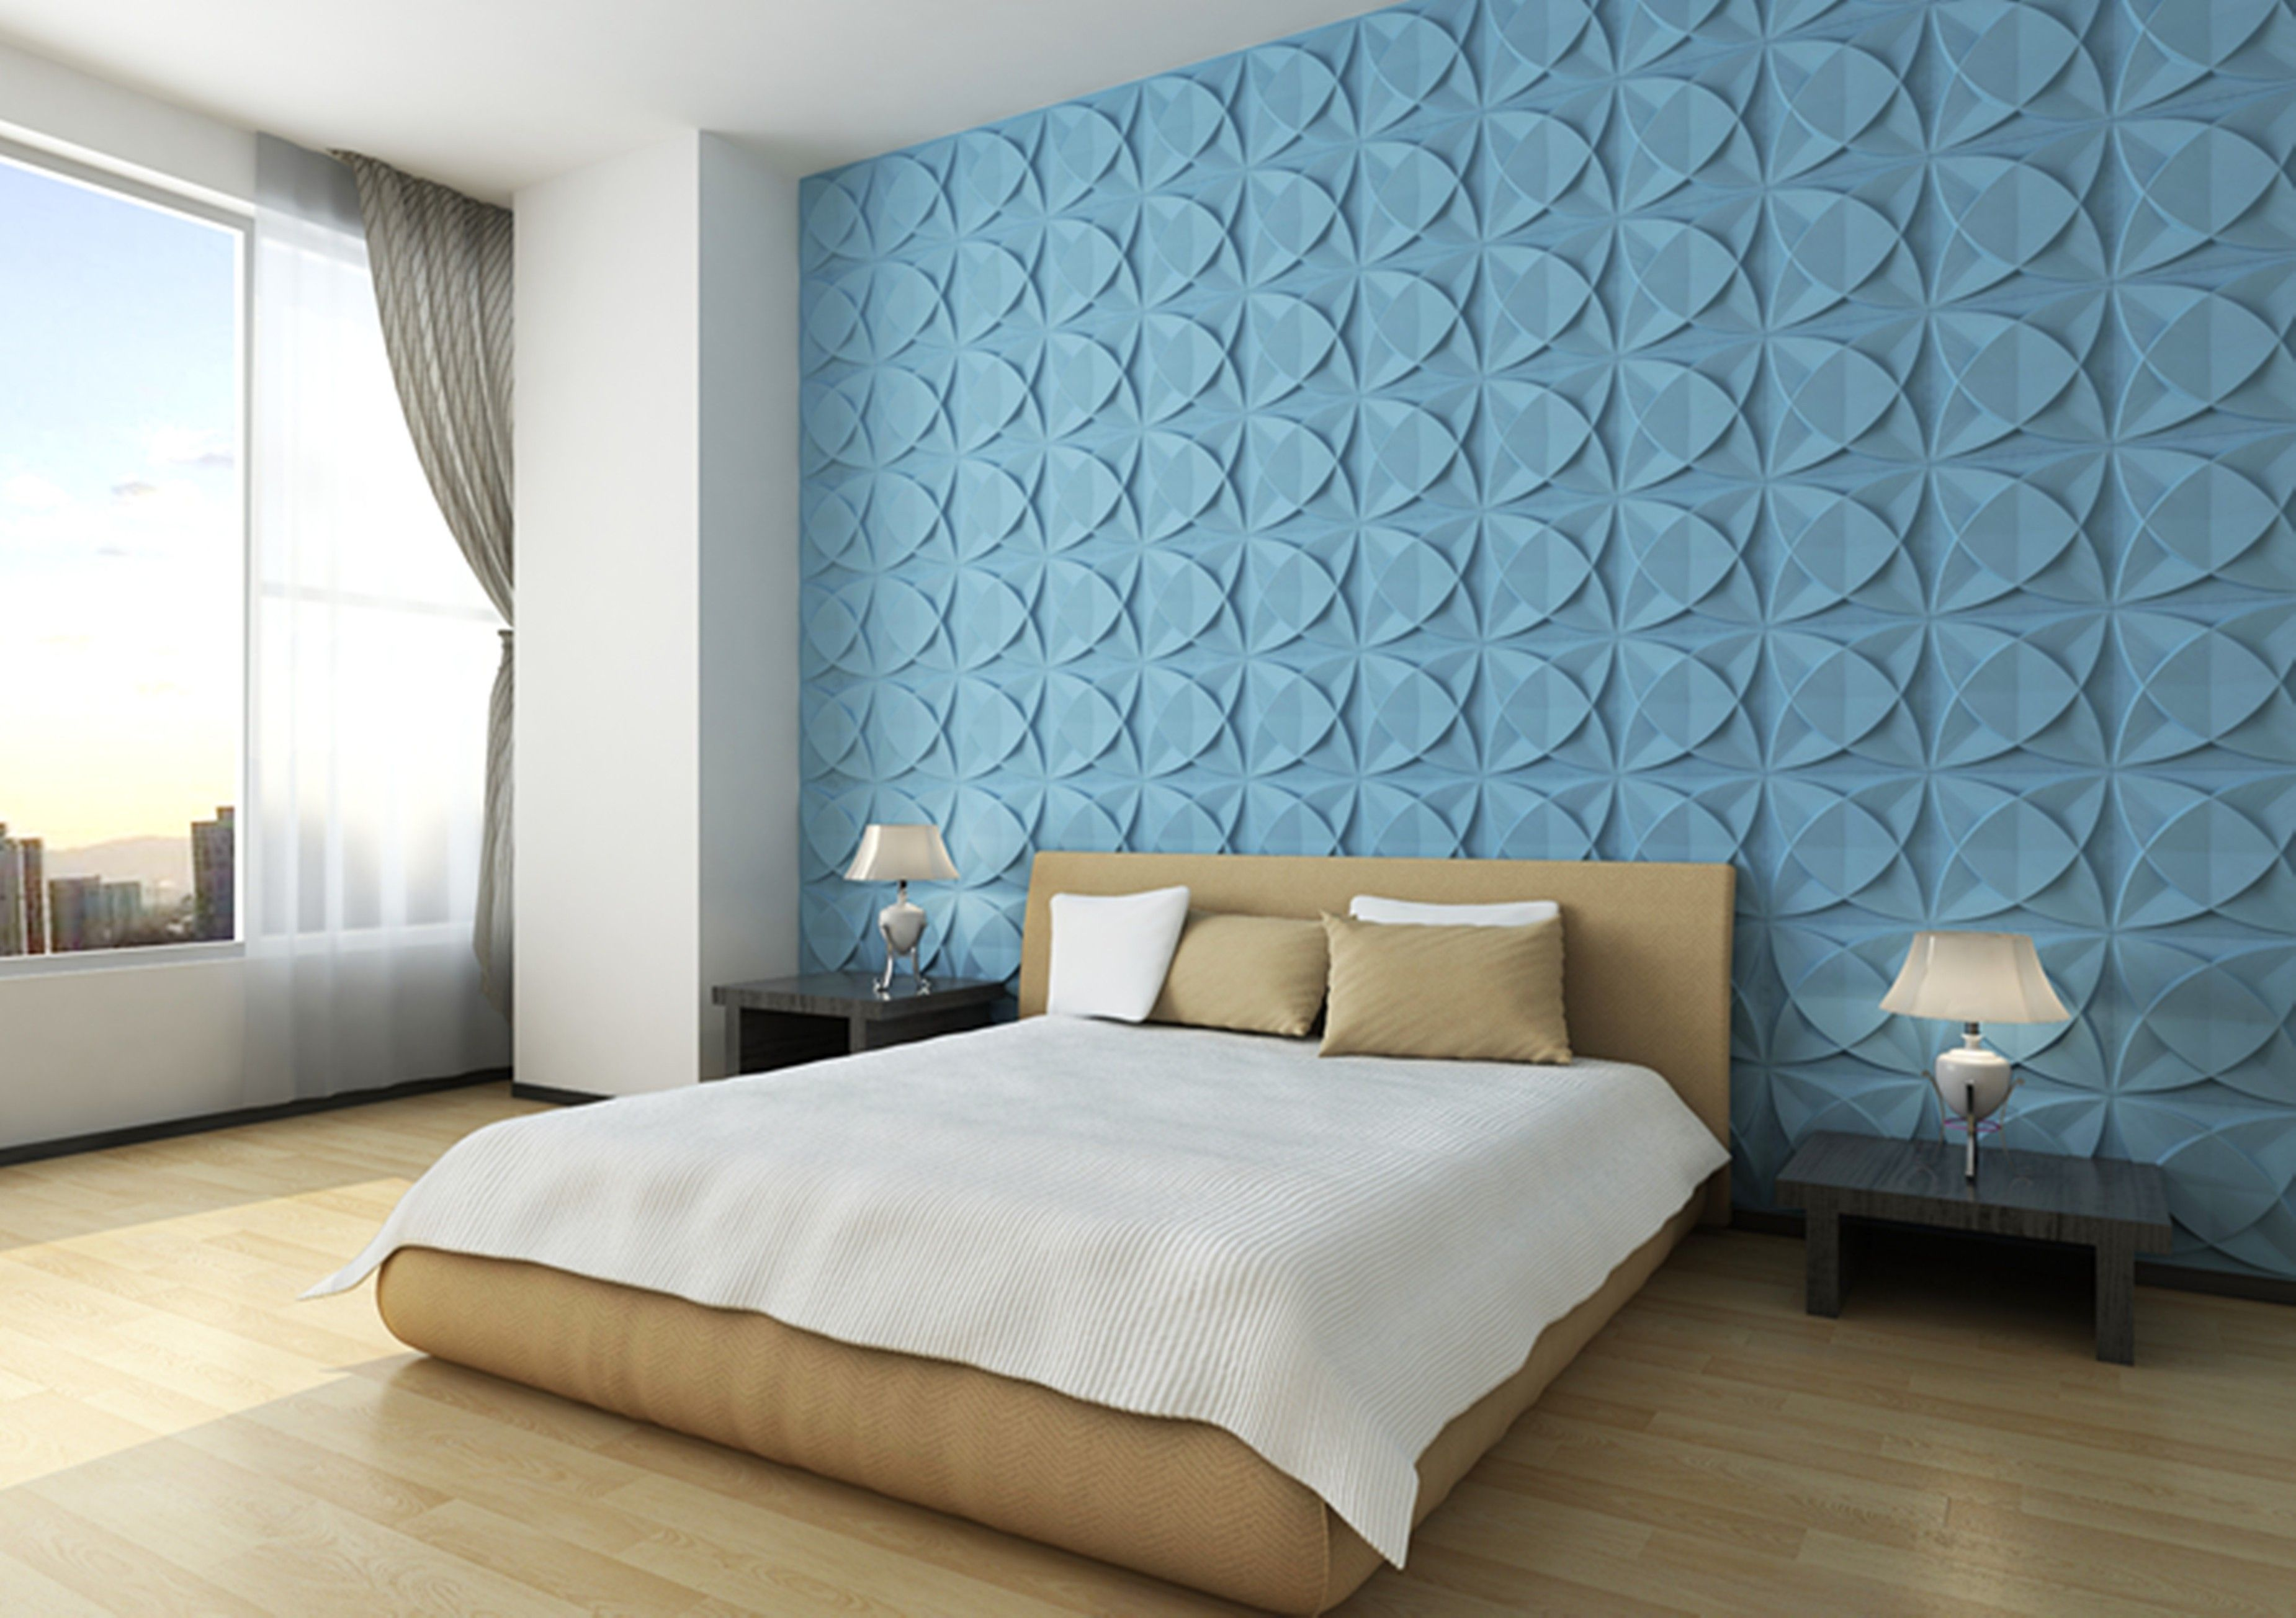 Cosmos 3D Board - 3D Wall Panels - Feature Wall Ideas | MOSIAC, TILE ...